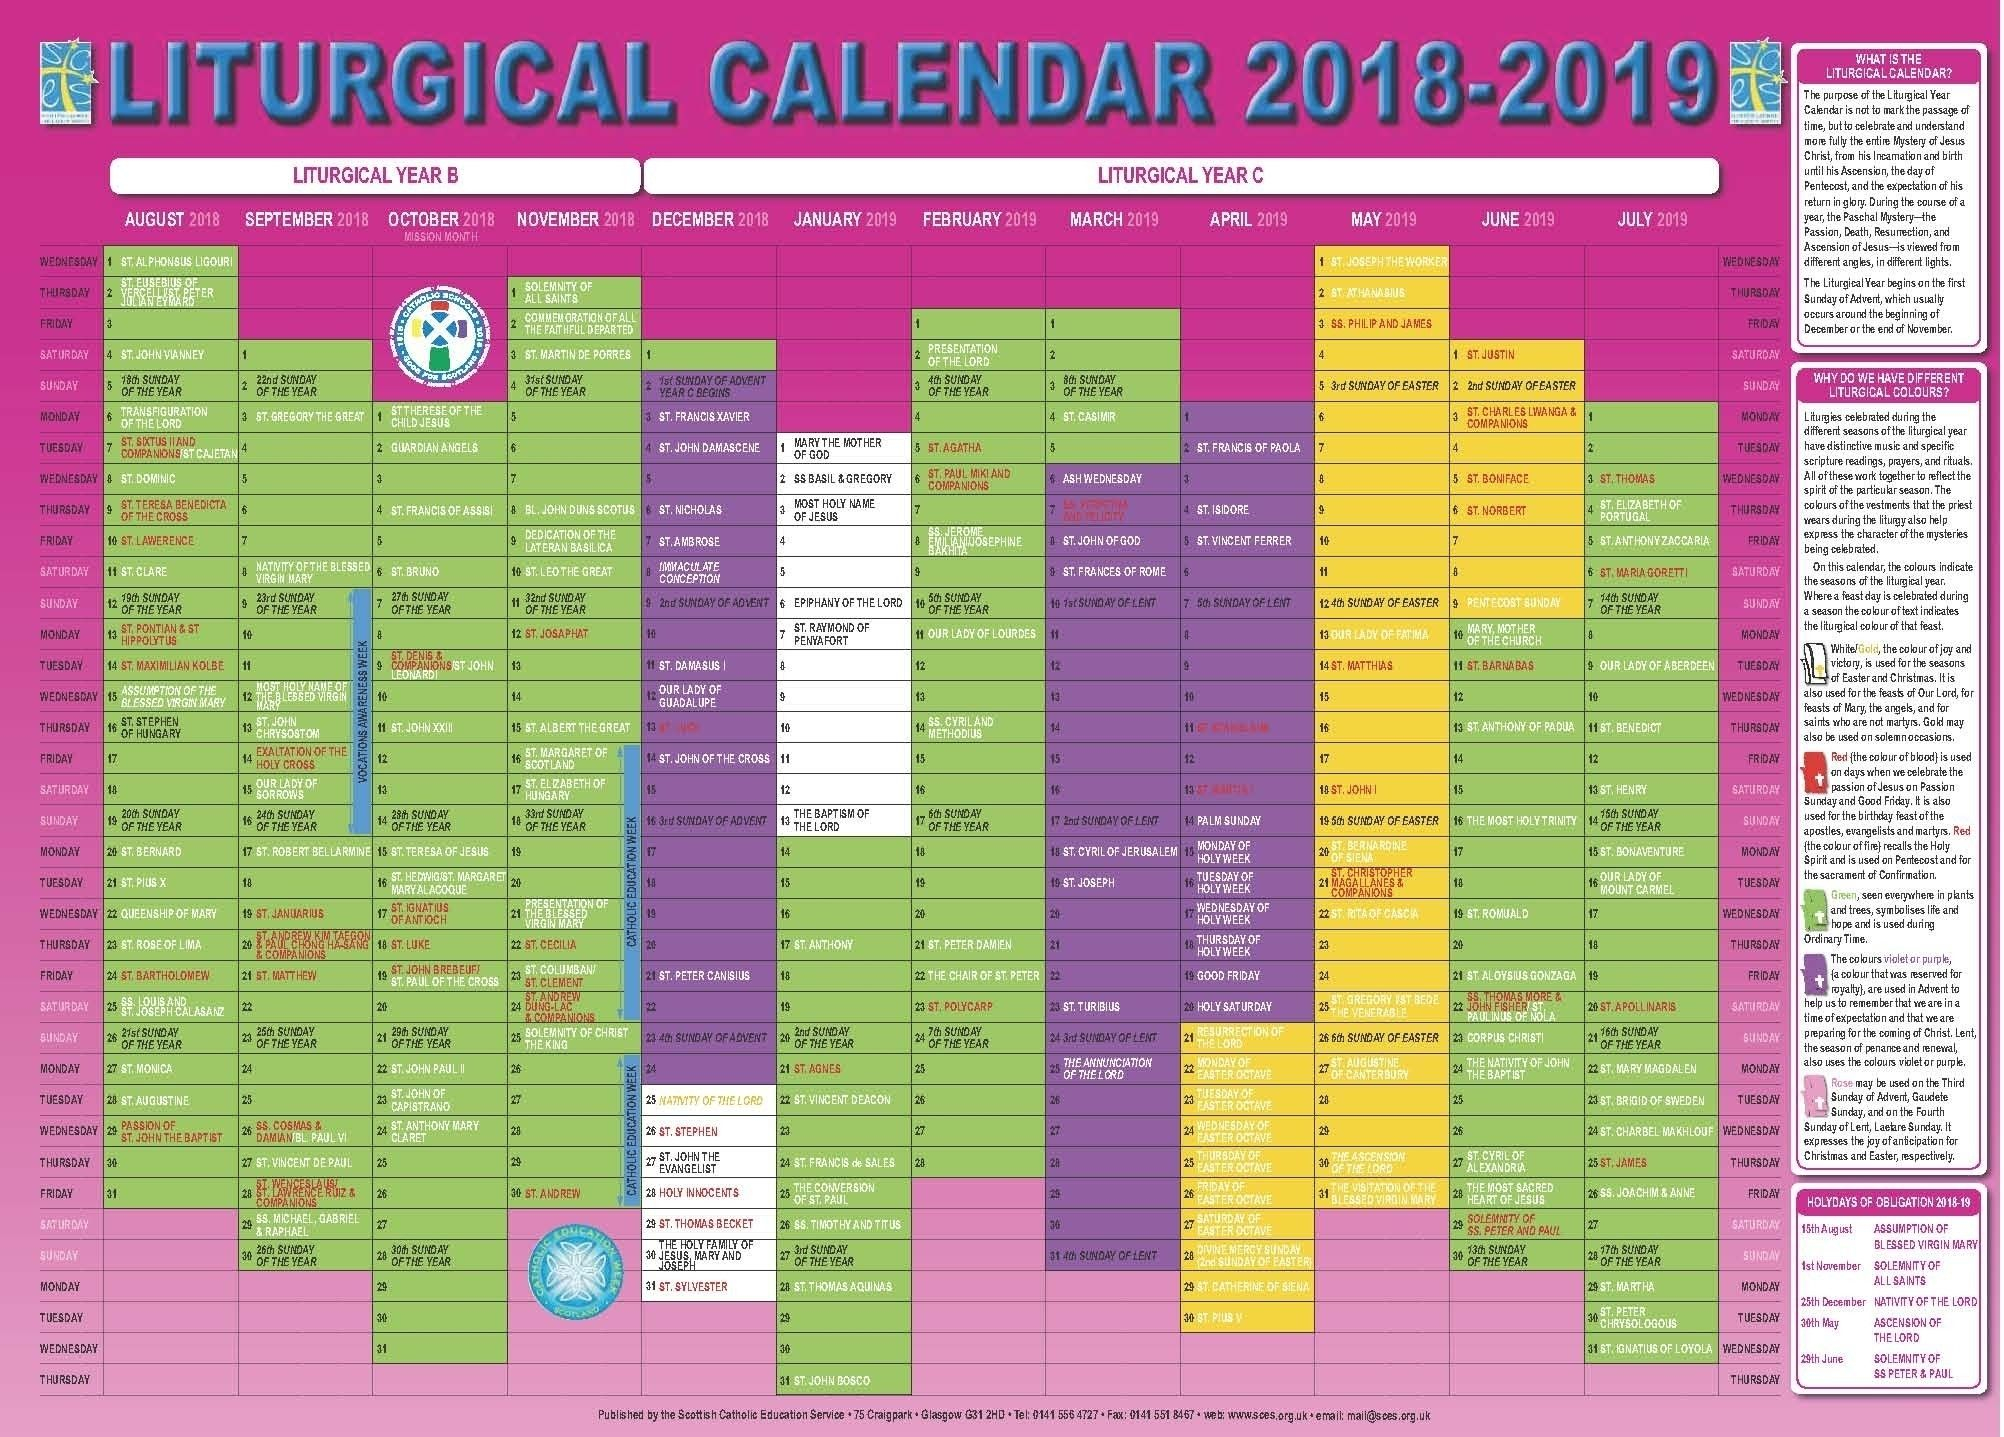 Free Printable Liturgical Calendar In 2020 | Calendar